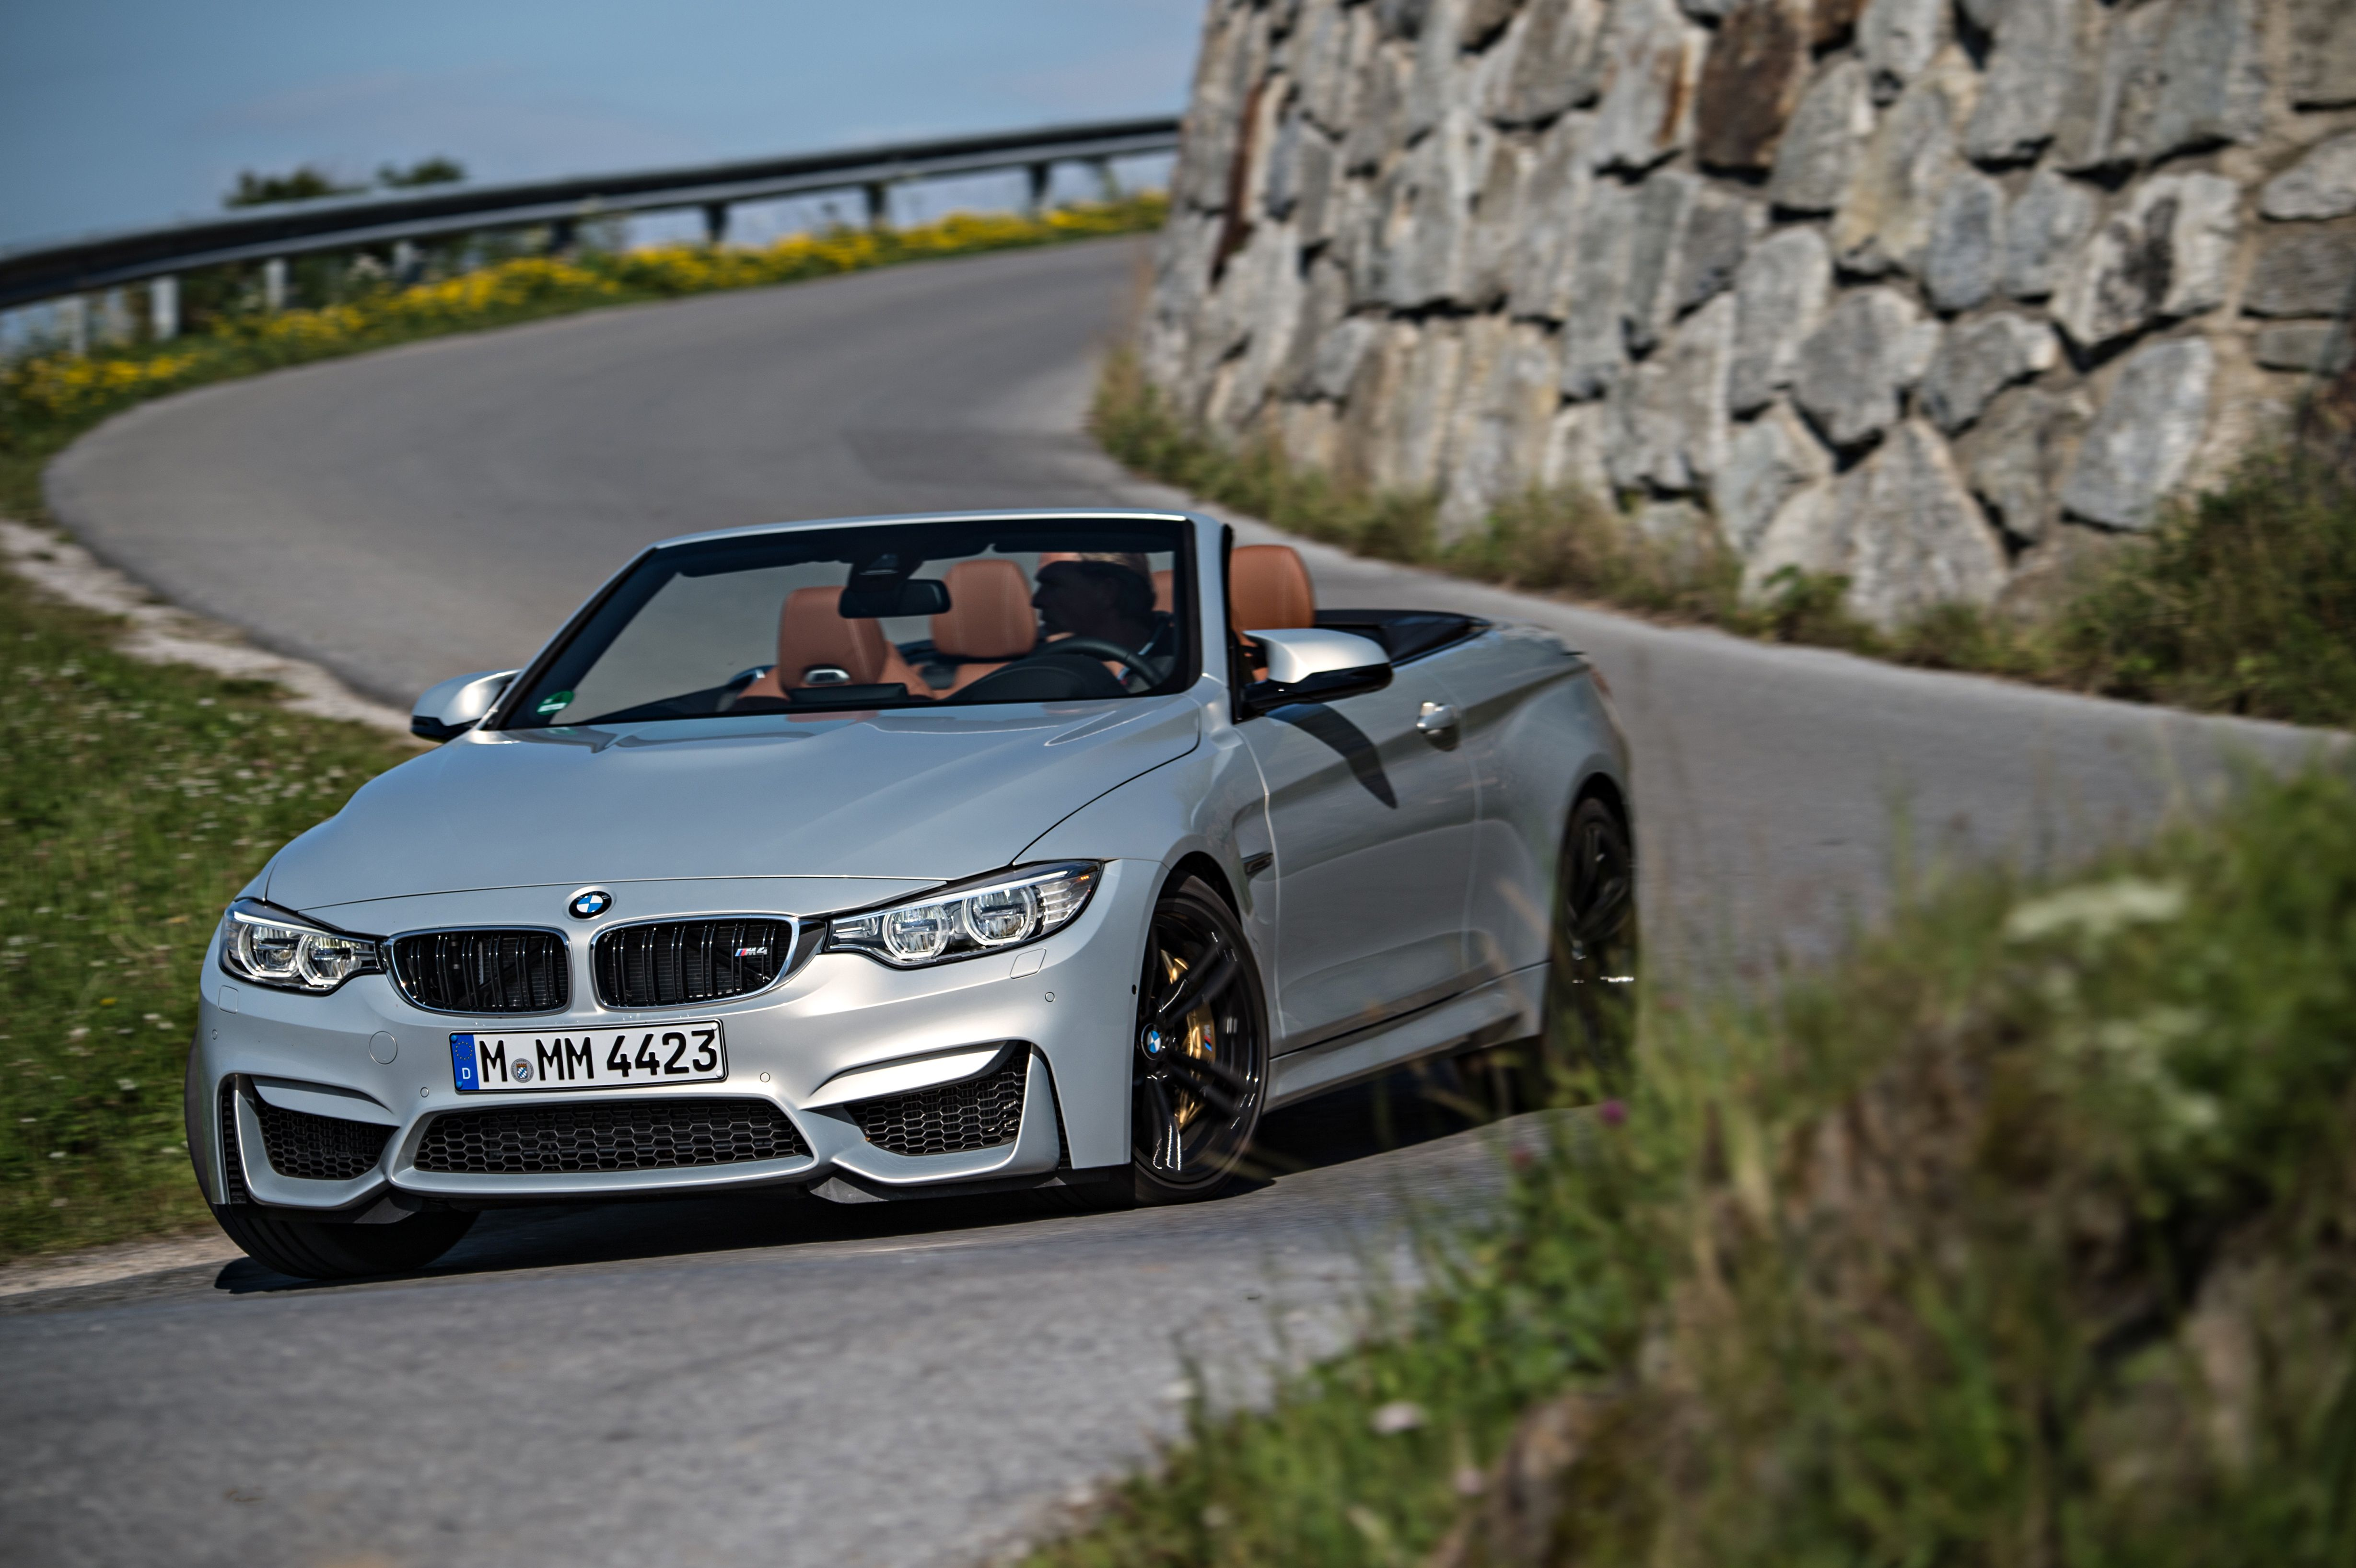 Pin On F83 M4 Convertible